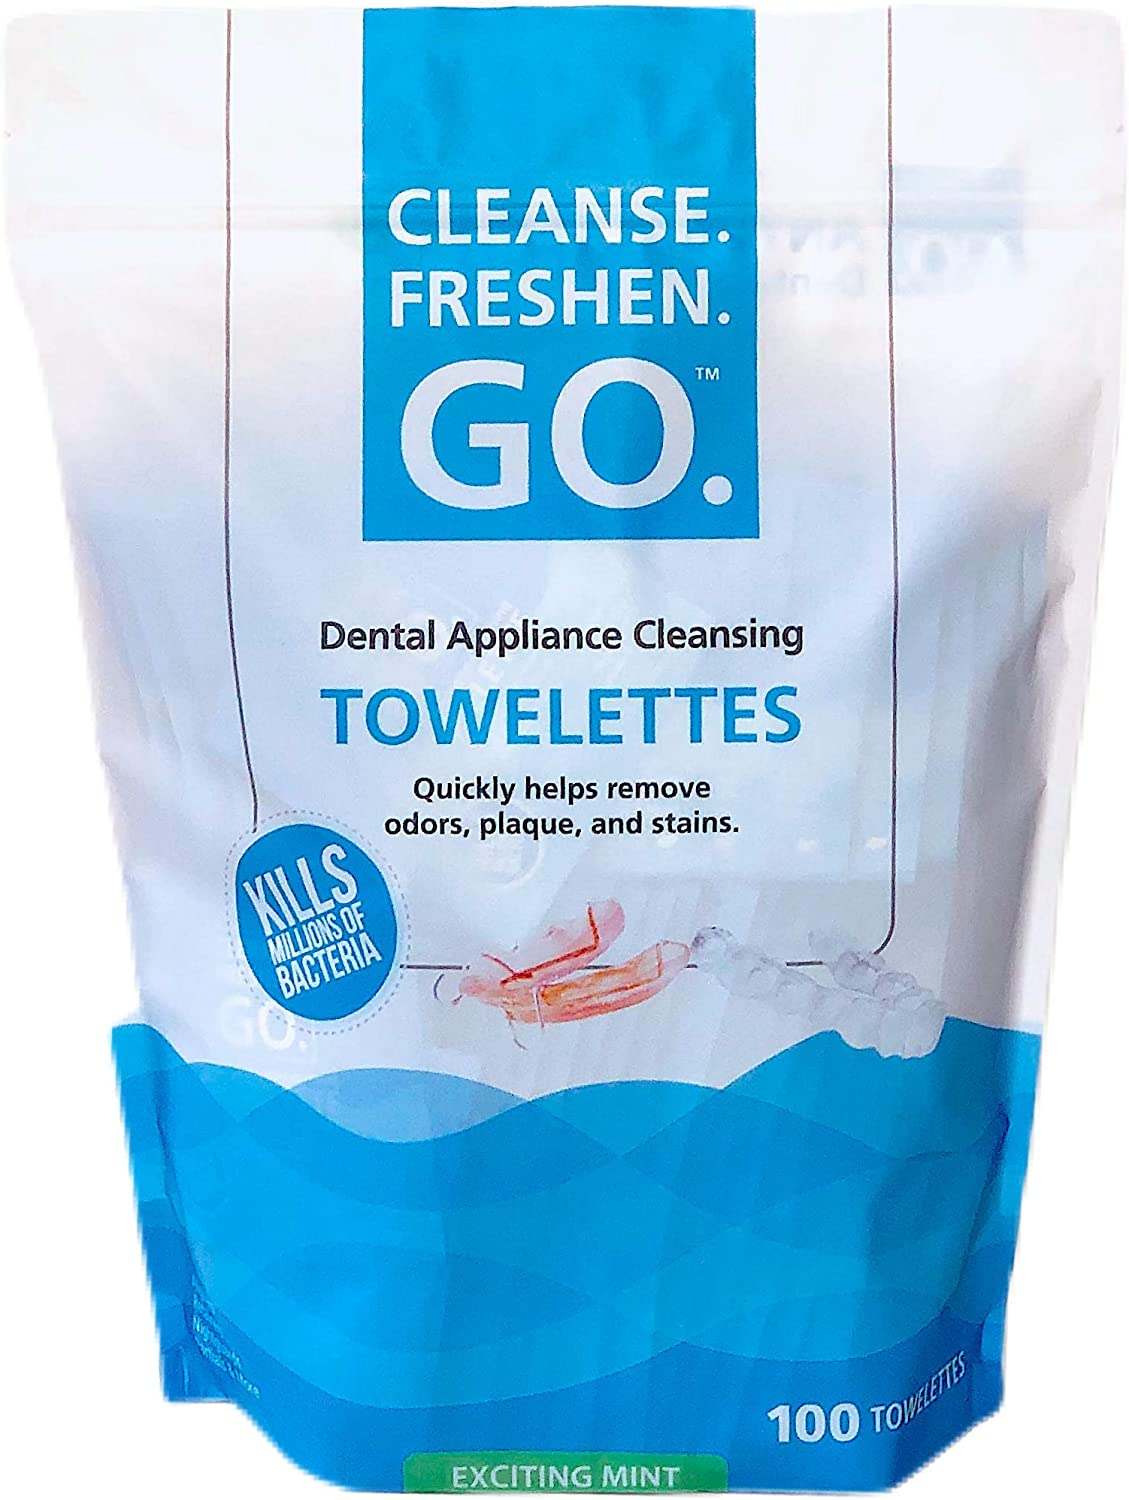 Cleanse.Freshen.Go. Anti-Bacterial Dental Appliance To Max 49% OFF Cheap SALE Start Cleansing